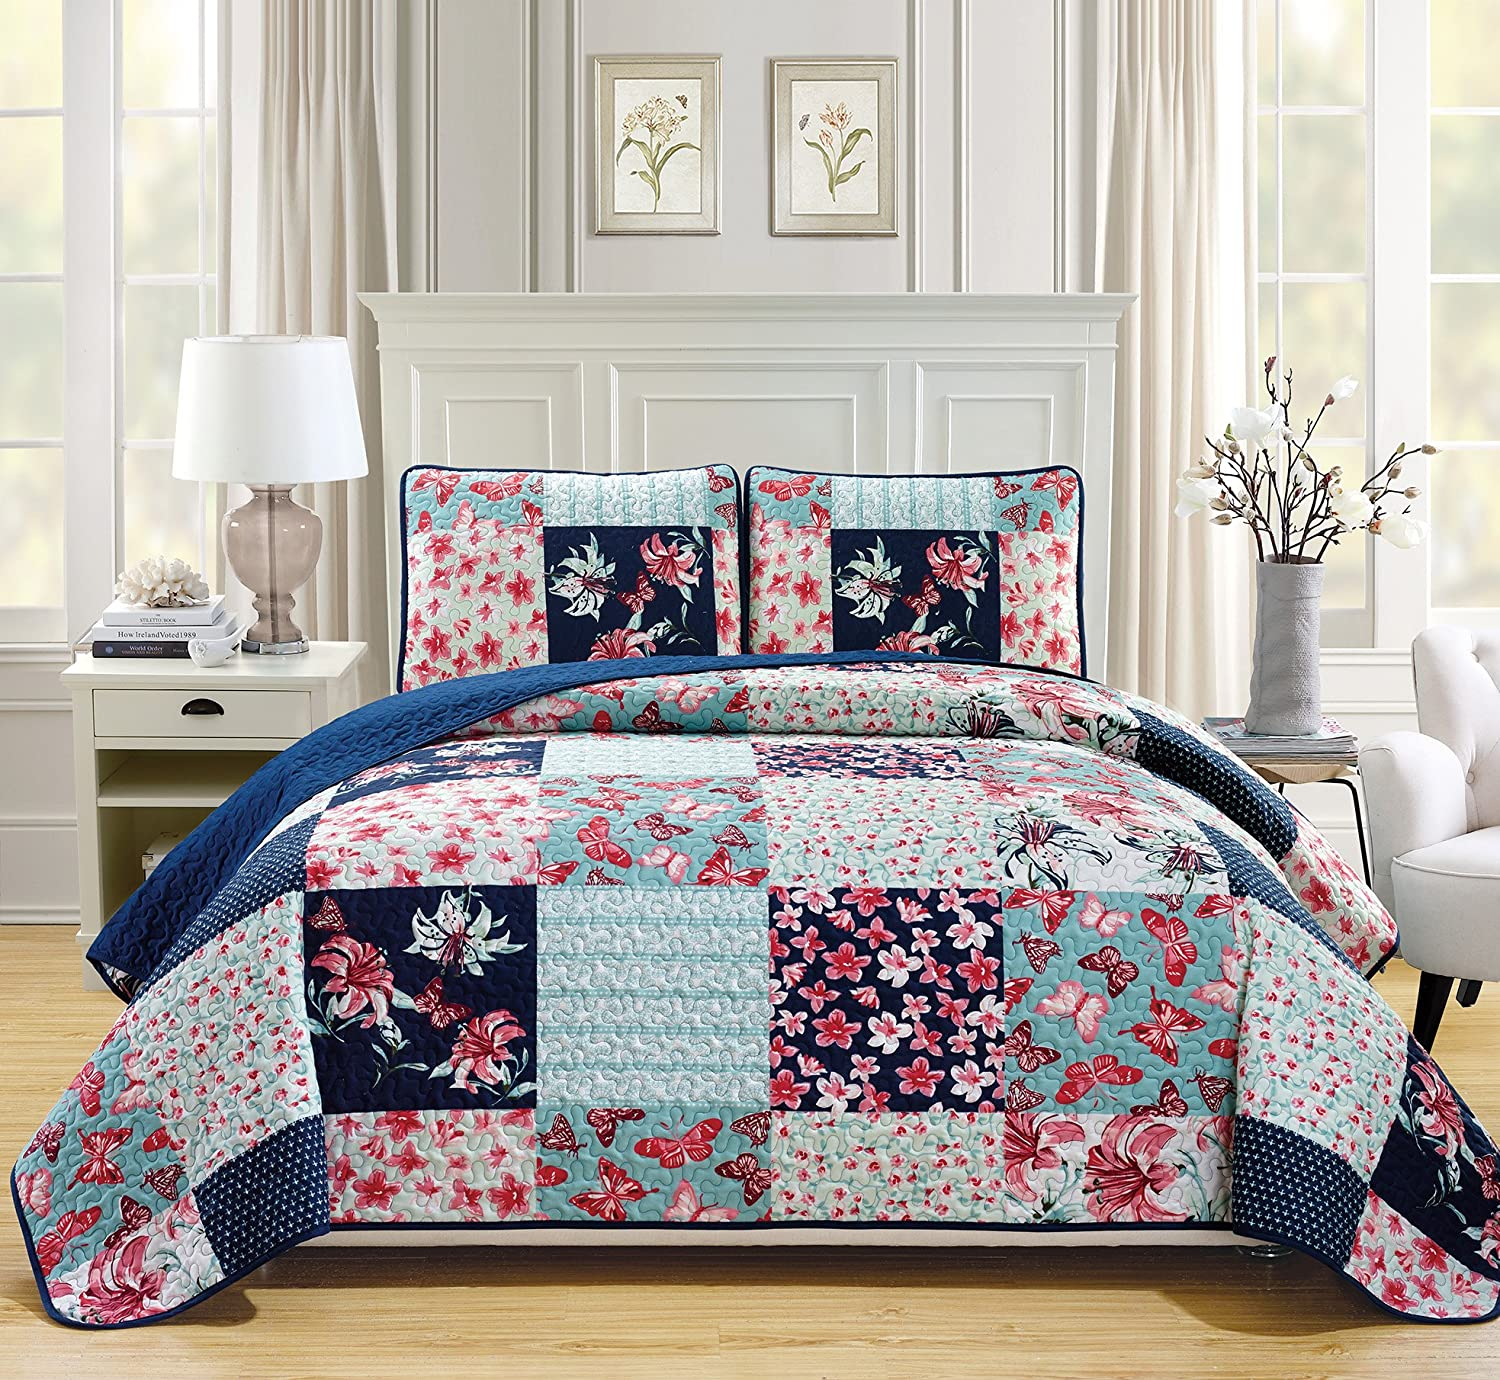 (Full/Queen) - Mk Collection 3pc Bedspread coverlet quilted Flower Butterfly Off White Navy Blue Teal green Red Full/Queen Over Size 270cm x 240cm Stella New B072PRFZBJ  Full/Queen